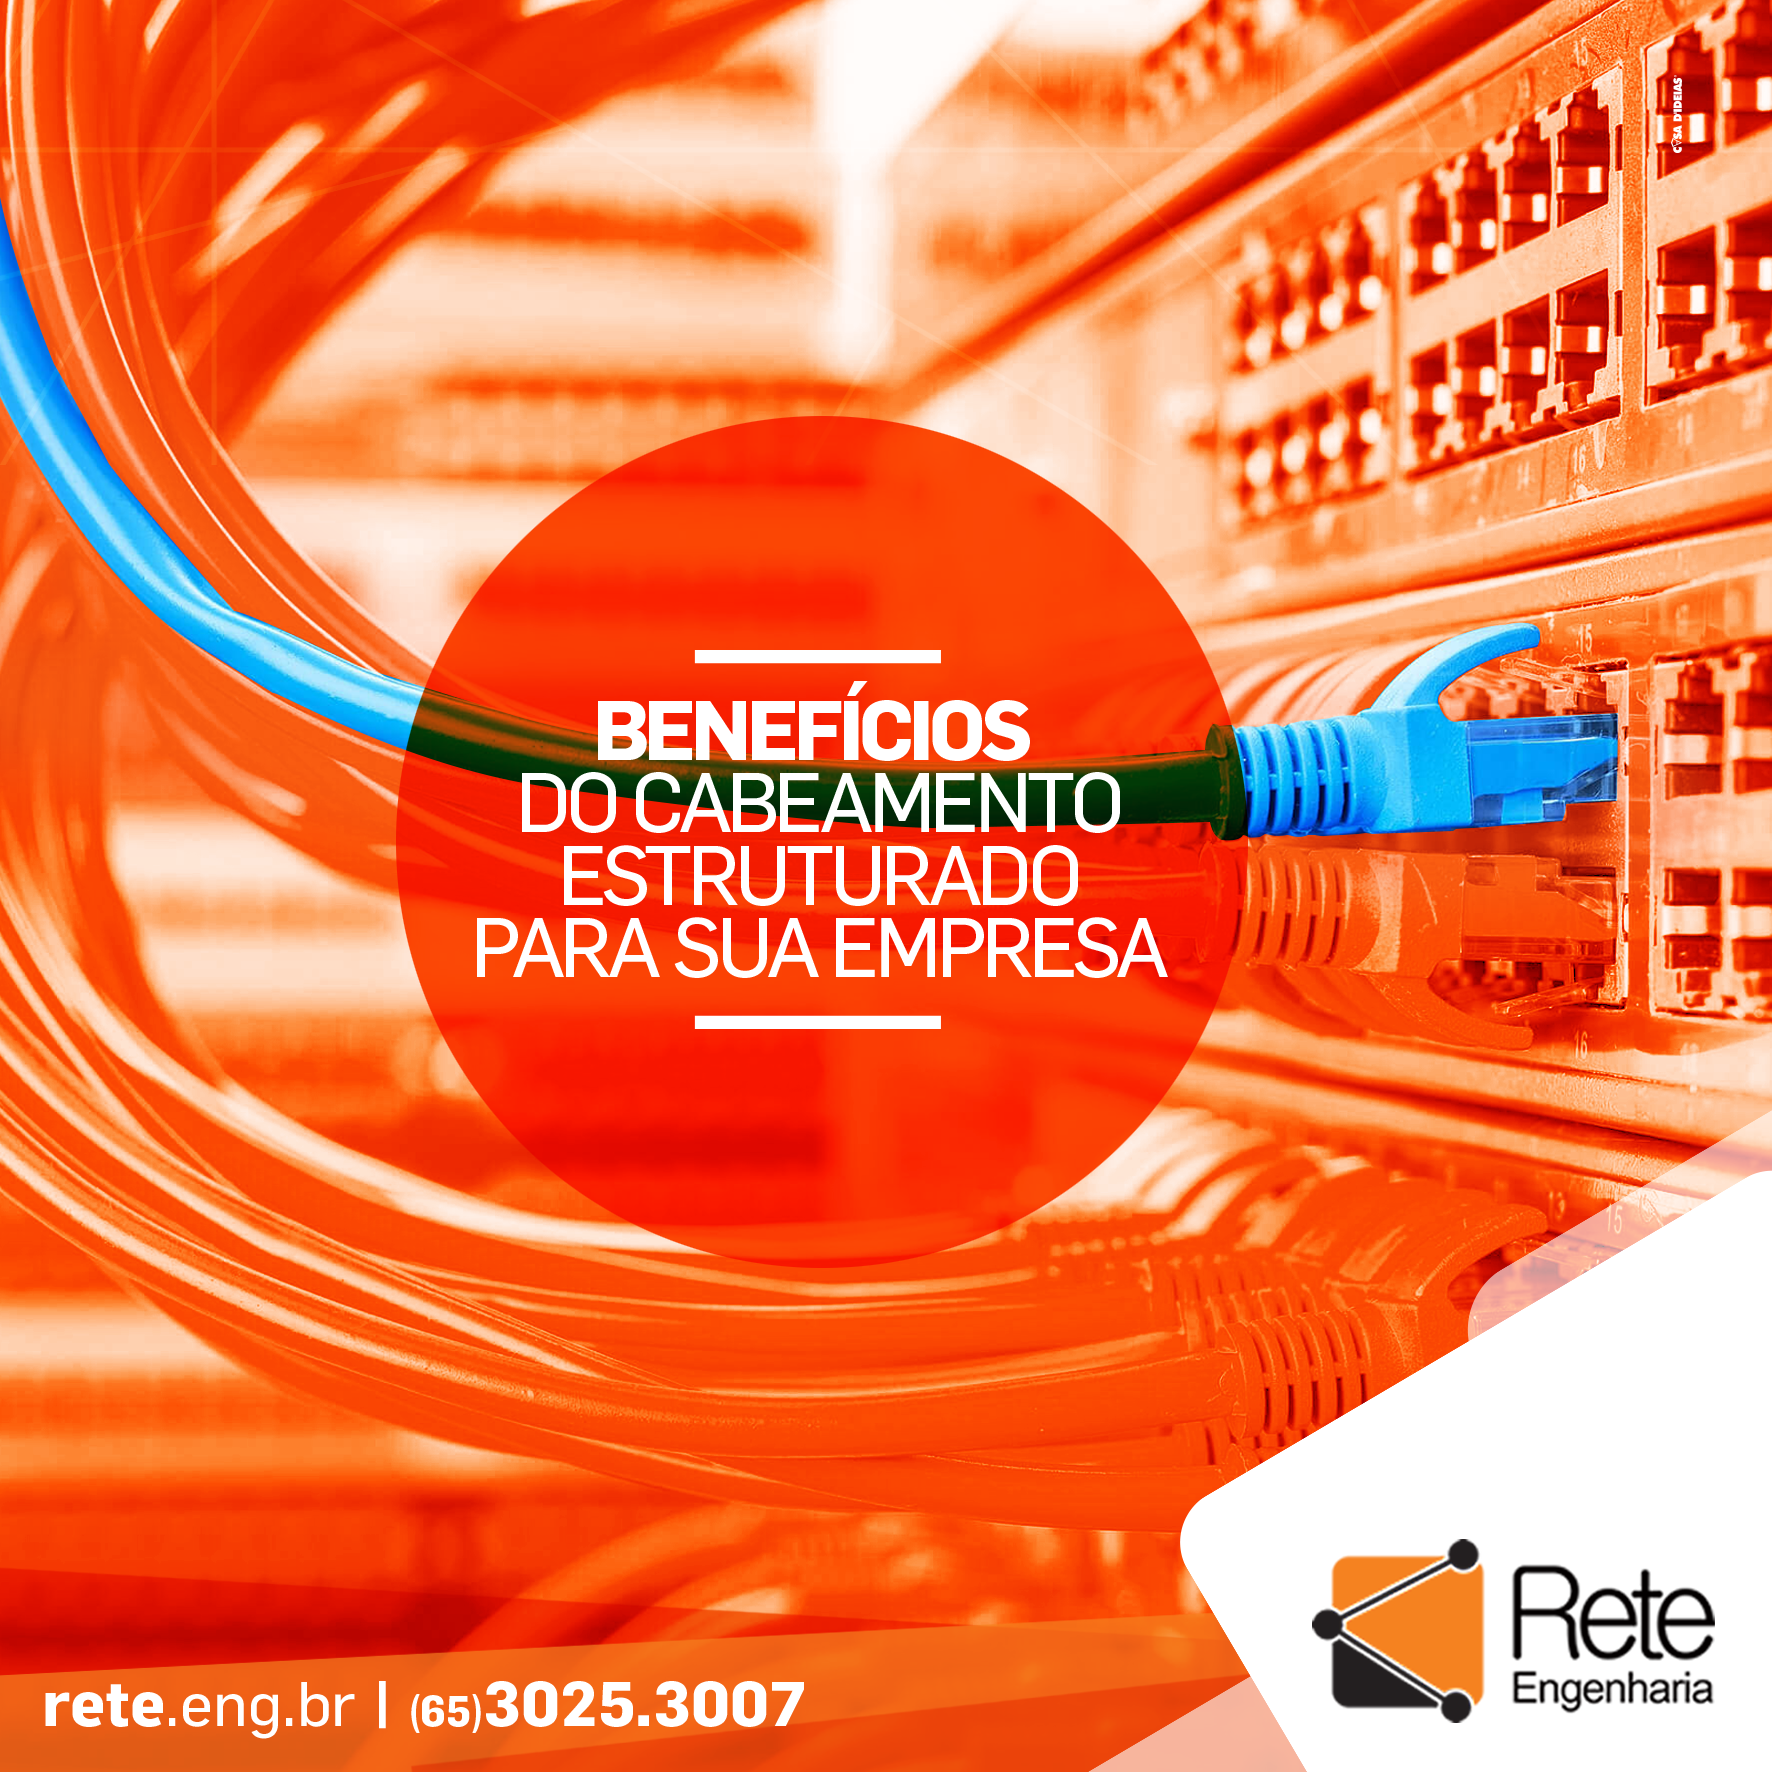 RETE---POST-INSTITUCIONAL-0407